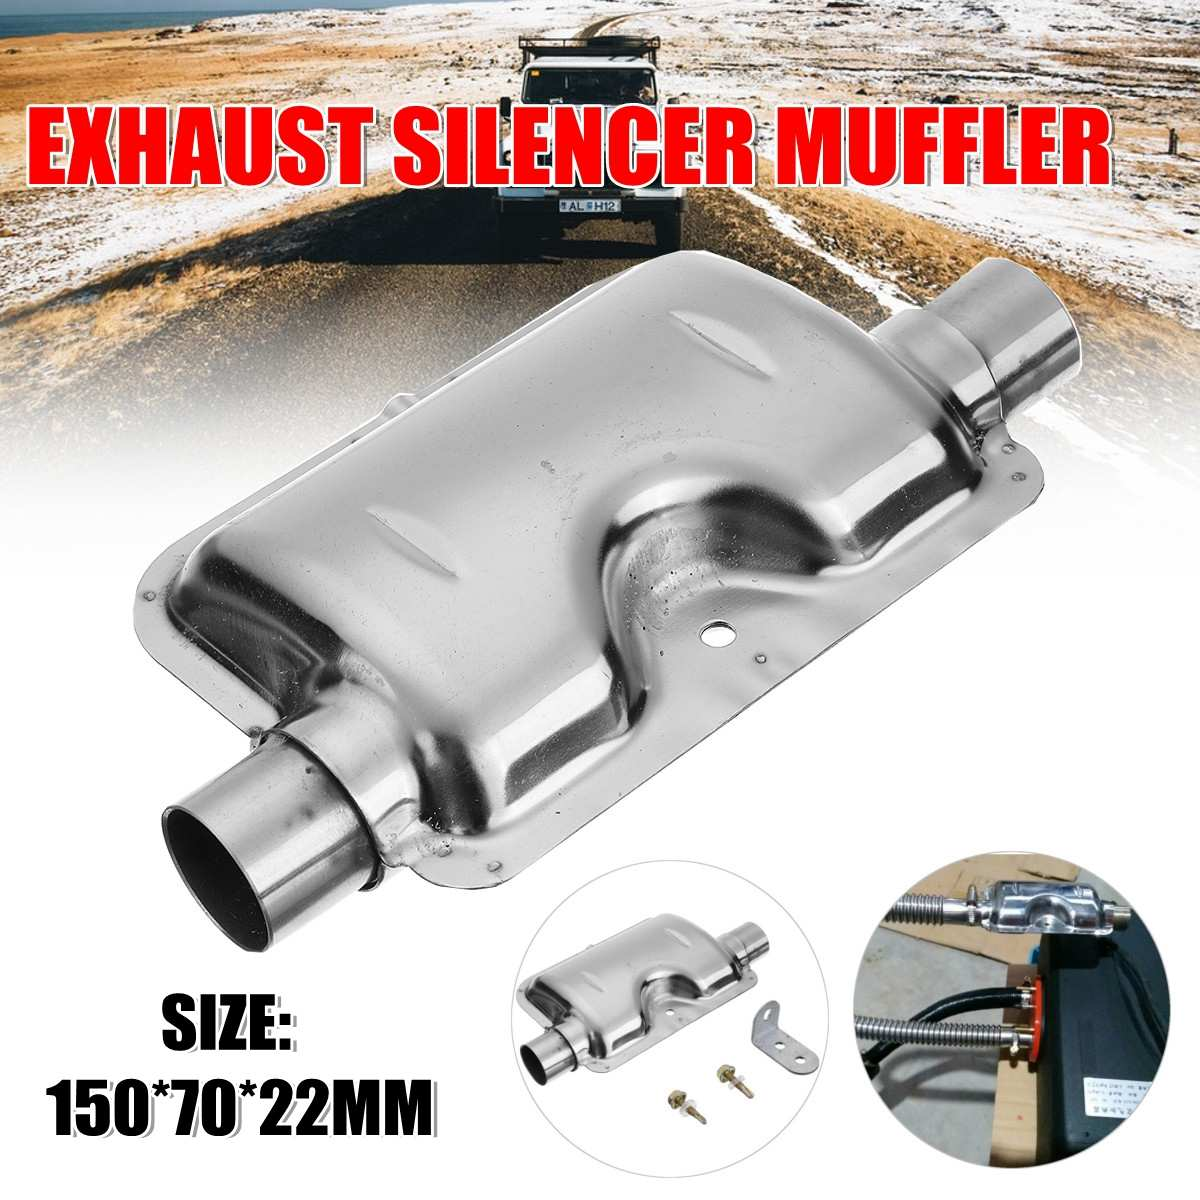 Parking Heater Stainless Steel Exhaust Muffler 24mm And Exhaust Pipe Suitable For Car Air Diesel Genuine  Car Accessories